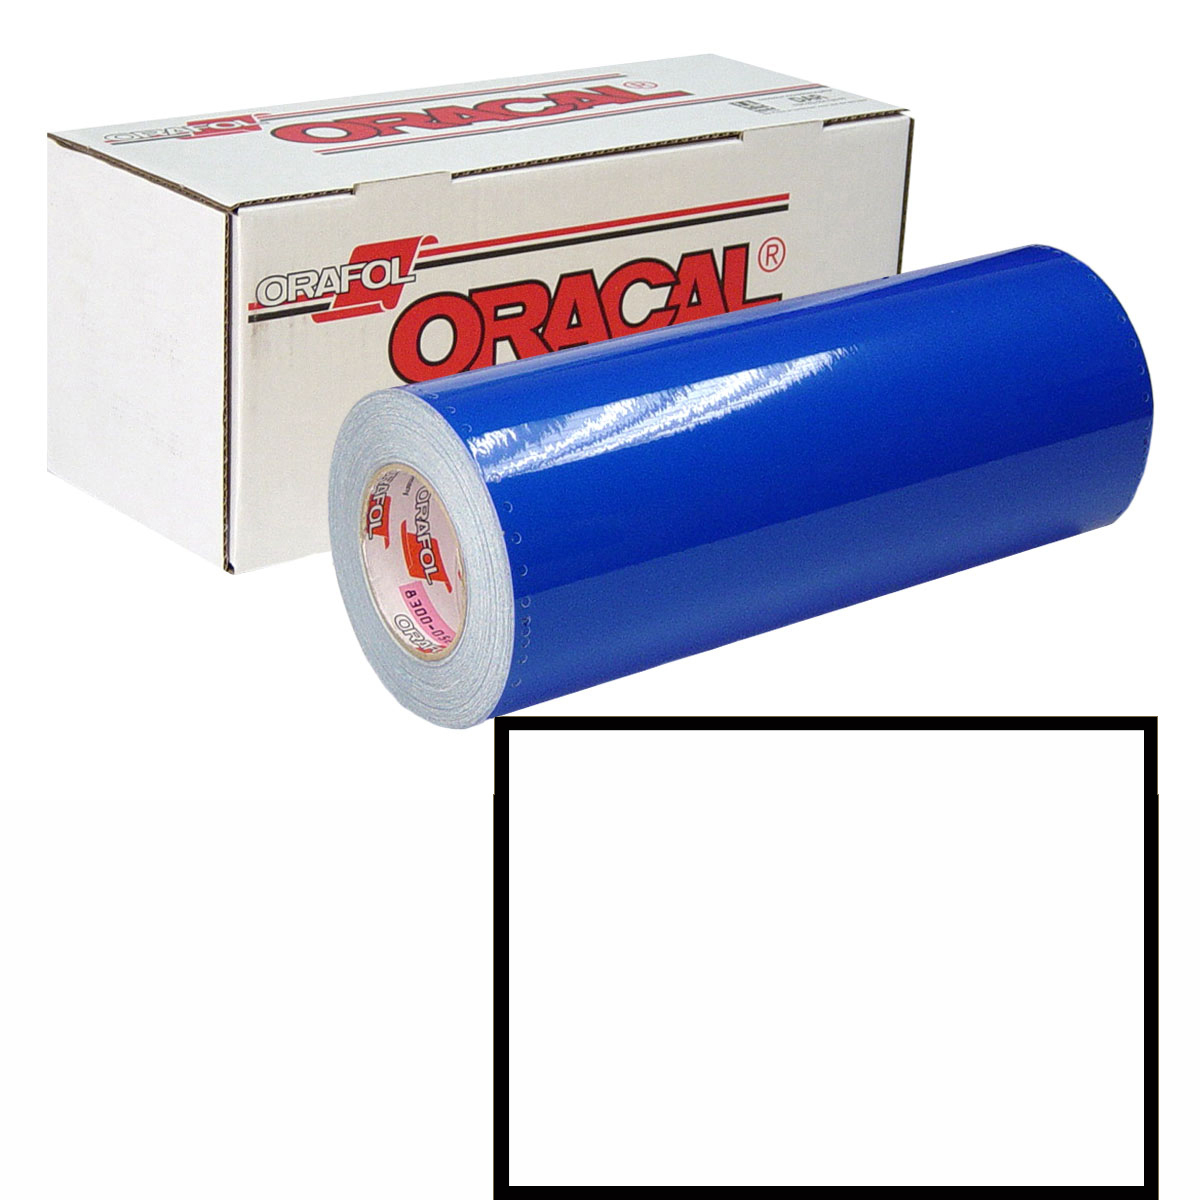 ORACAL 631 Unp 30in X 50yd 000 Transparent